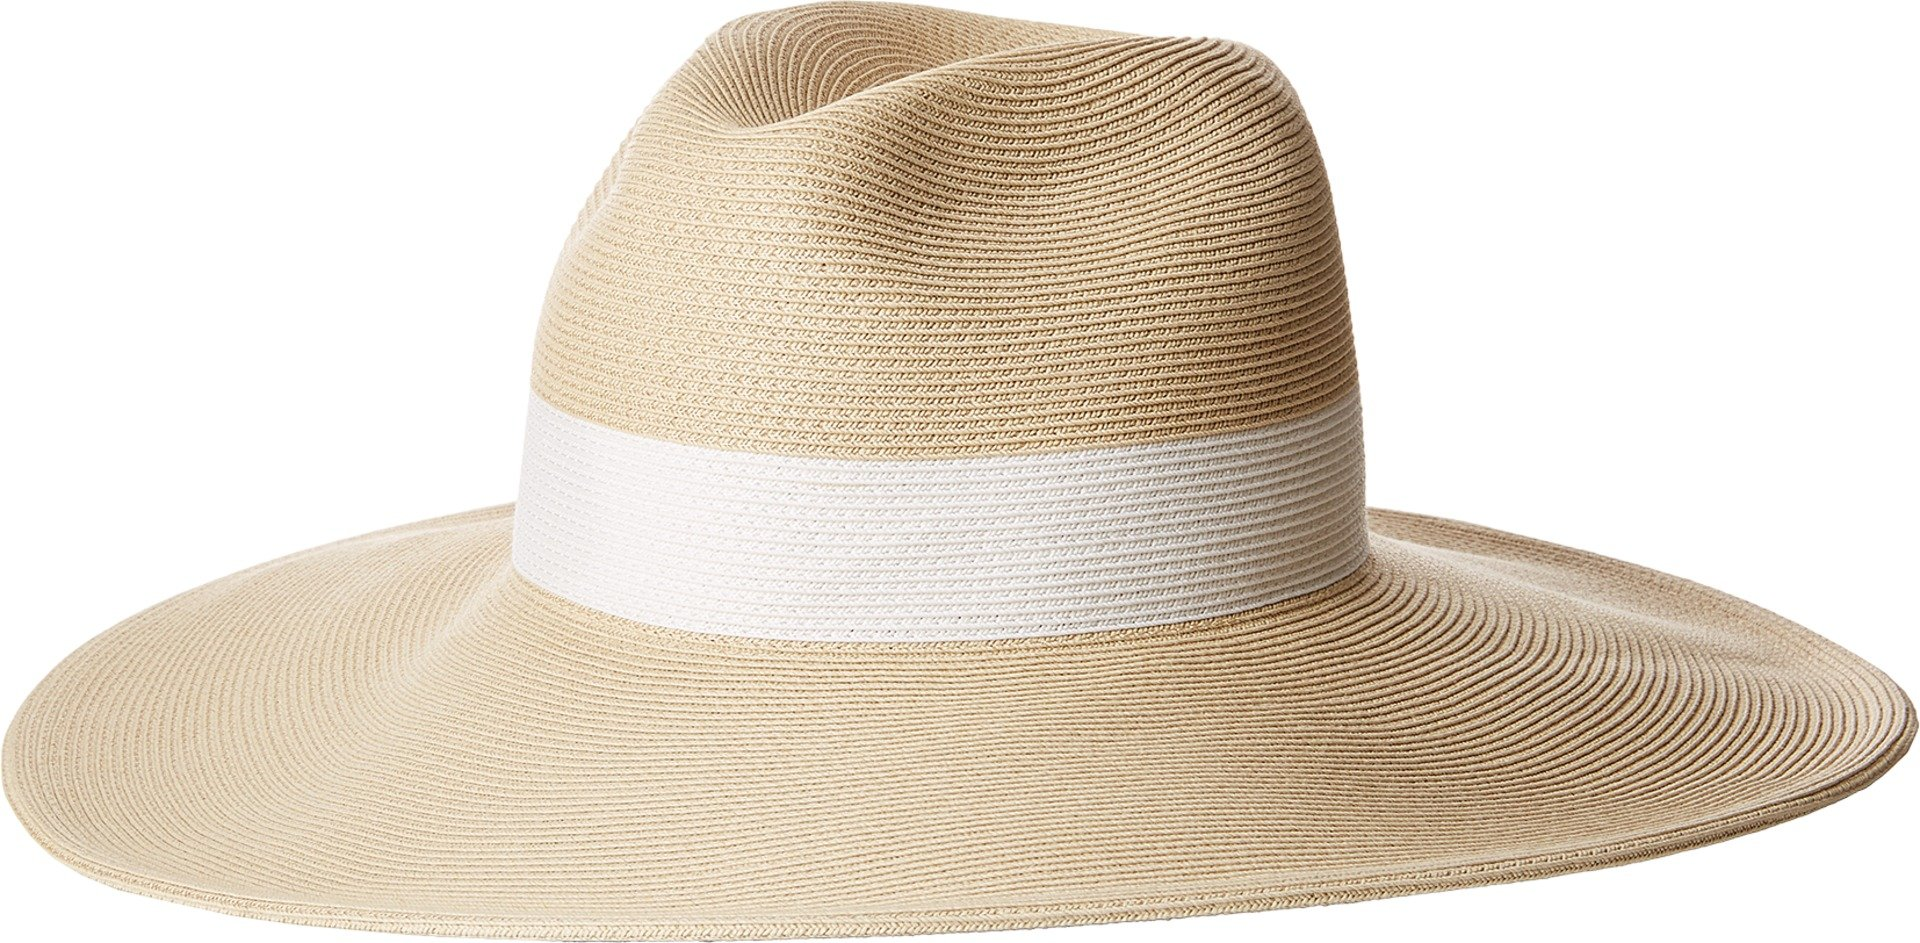 Hat Attack Women's Fine Braid Inset Continental Natural/White One Size